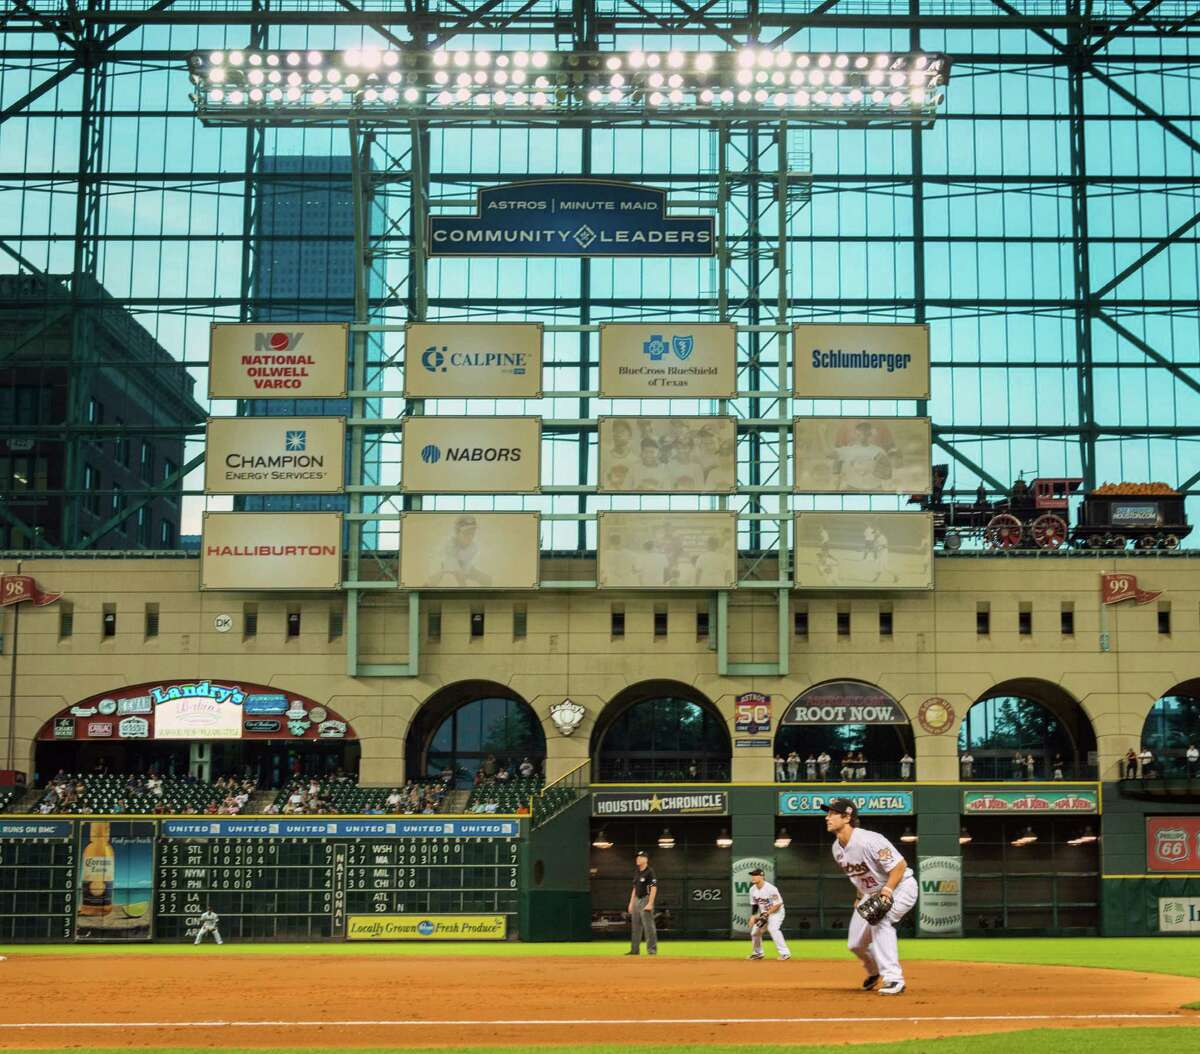 New billboards at Minute Maid Park rise above the Crawford Boxes in left field. The billboards bear logos of corporate partners participating in the Astros Community Leaders Program, but the display itself has sparked criticism.